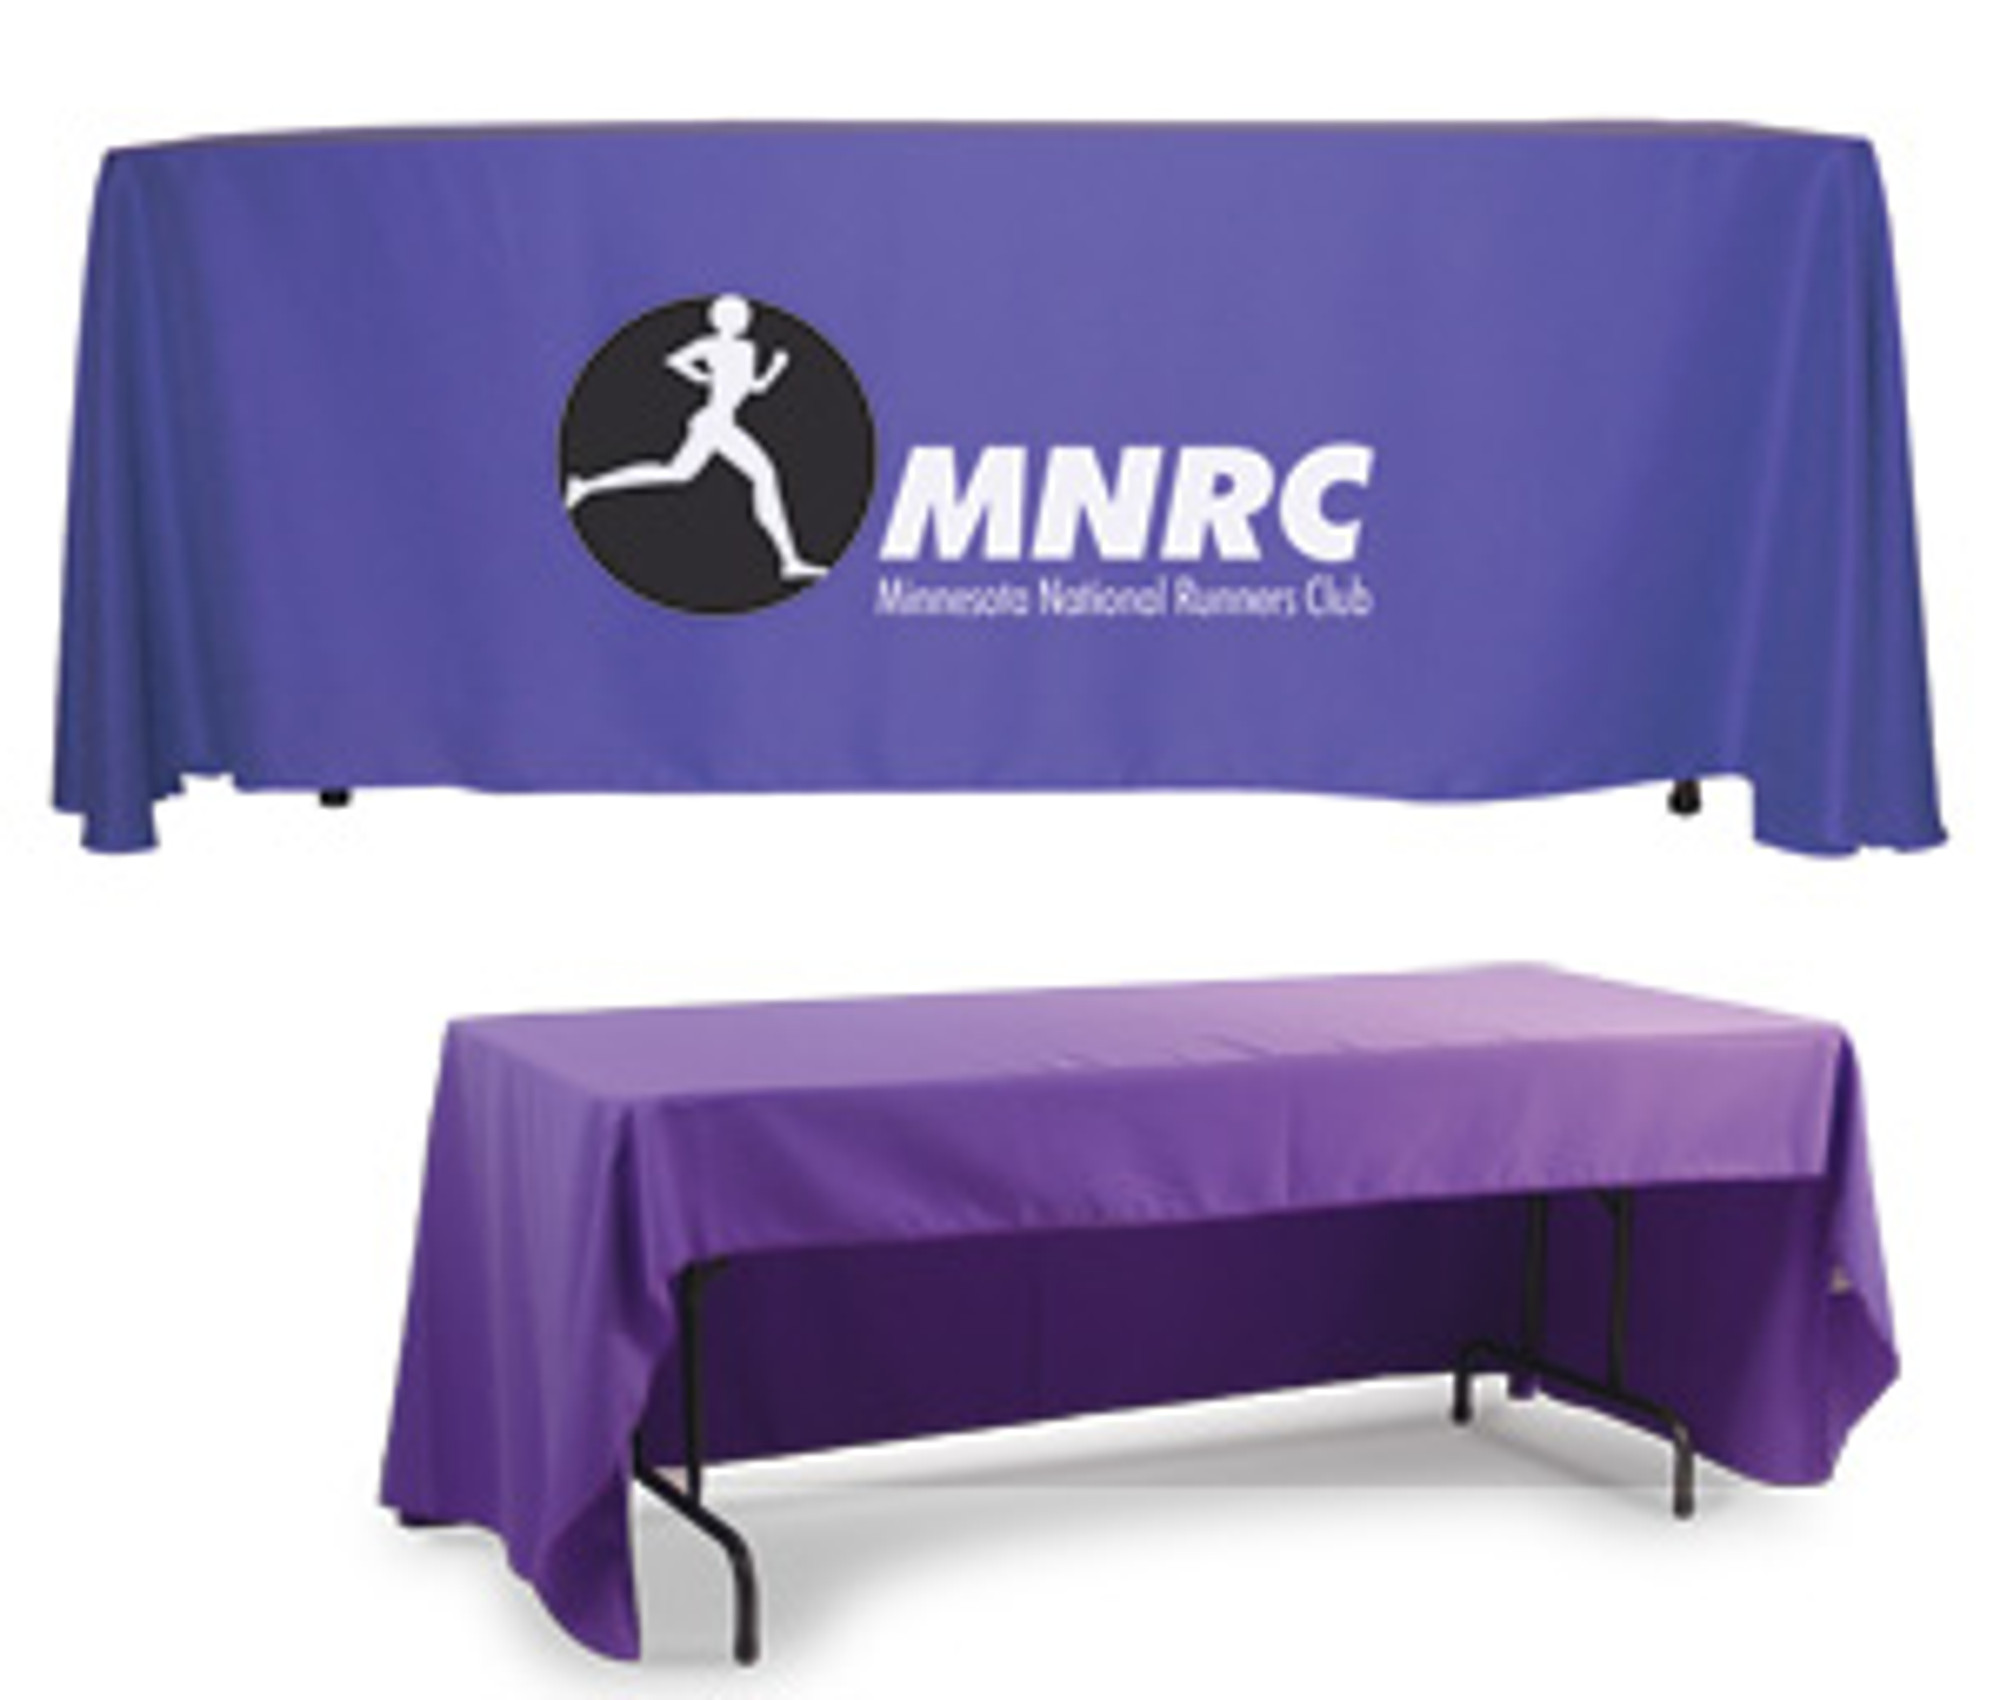 207 & Custom Trade Show Table Covers